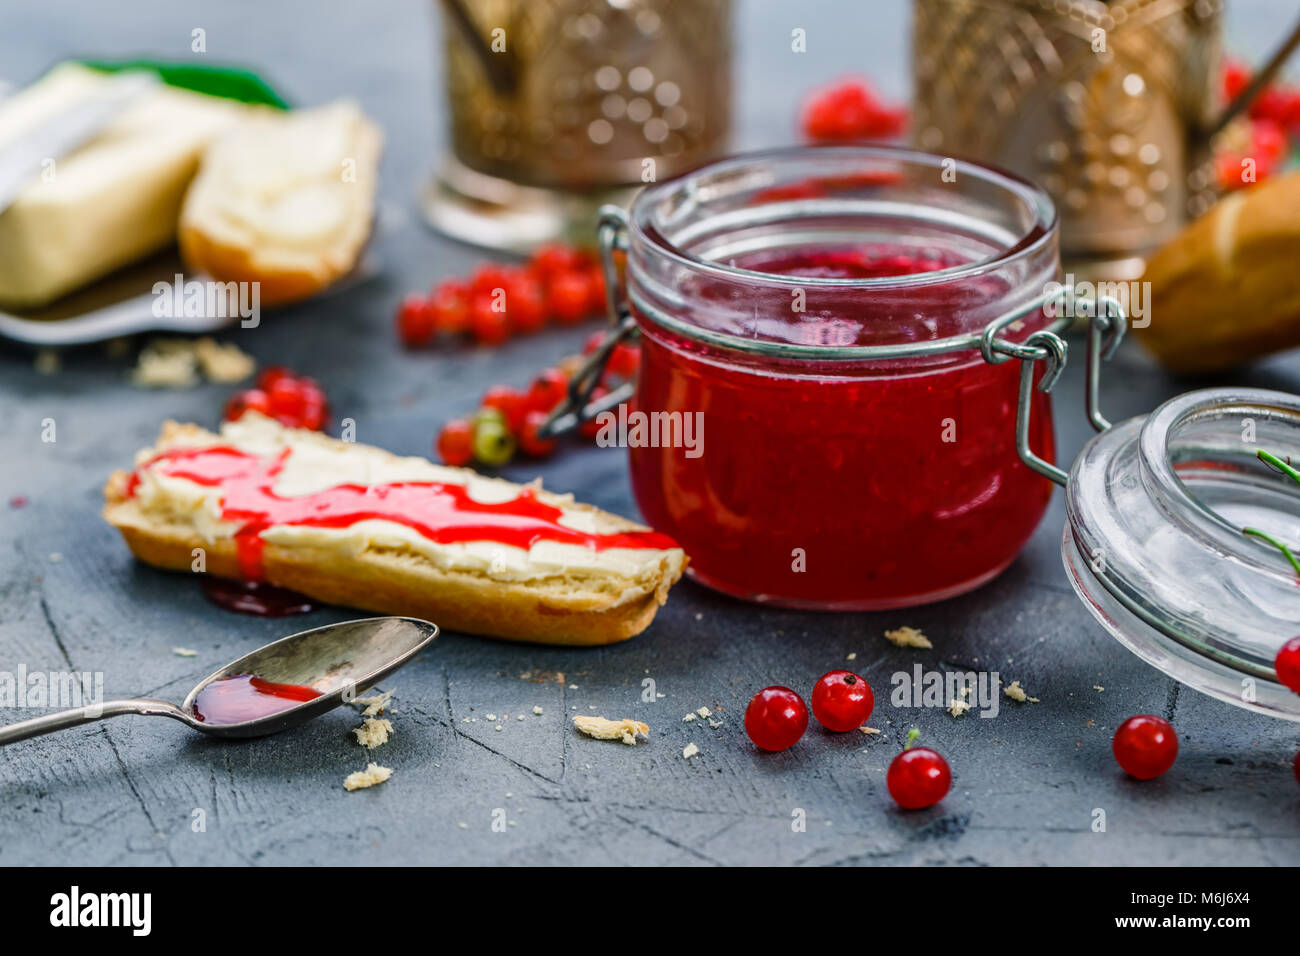 Red currants jam and berries, close view - Stock Image